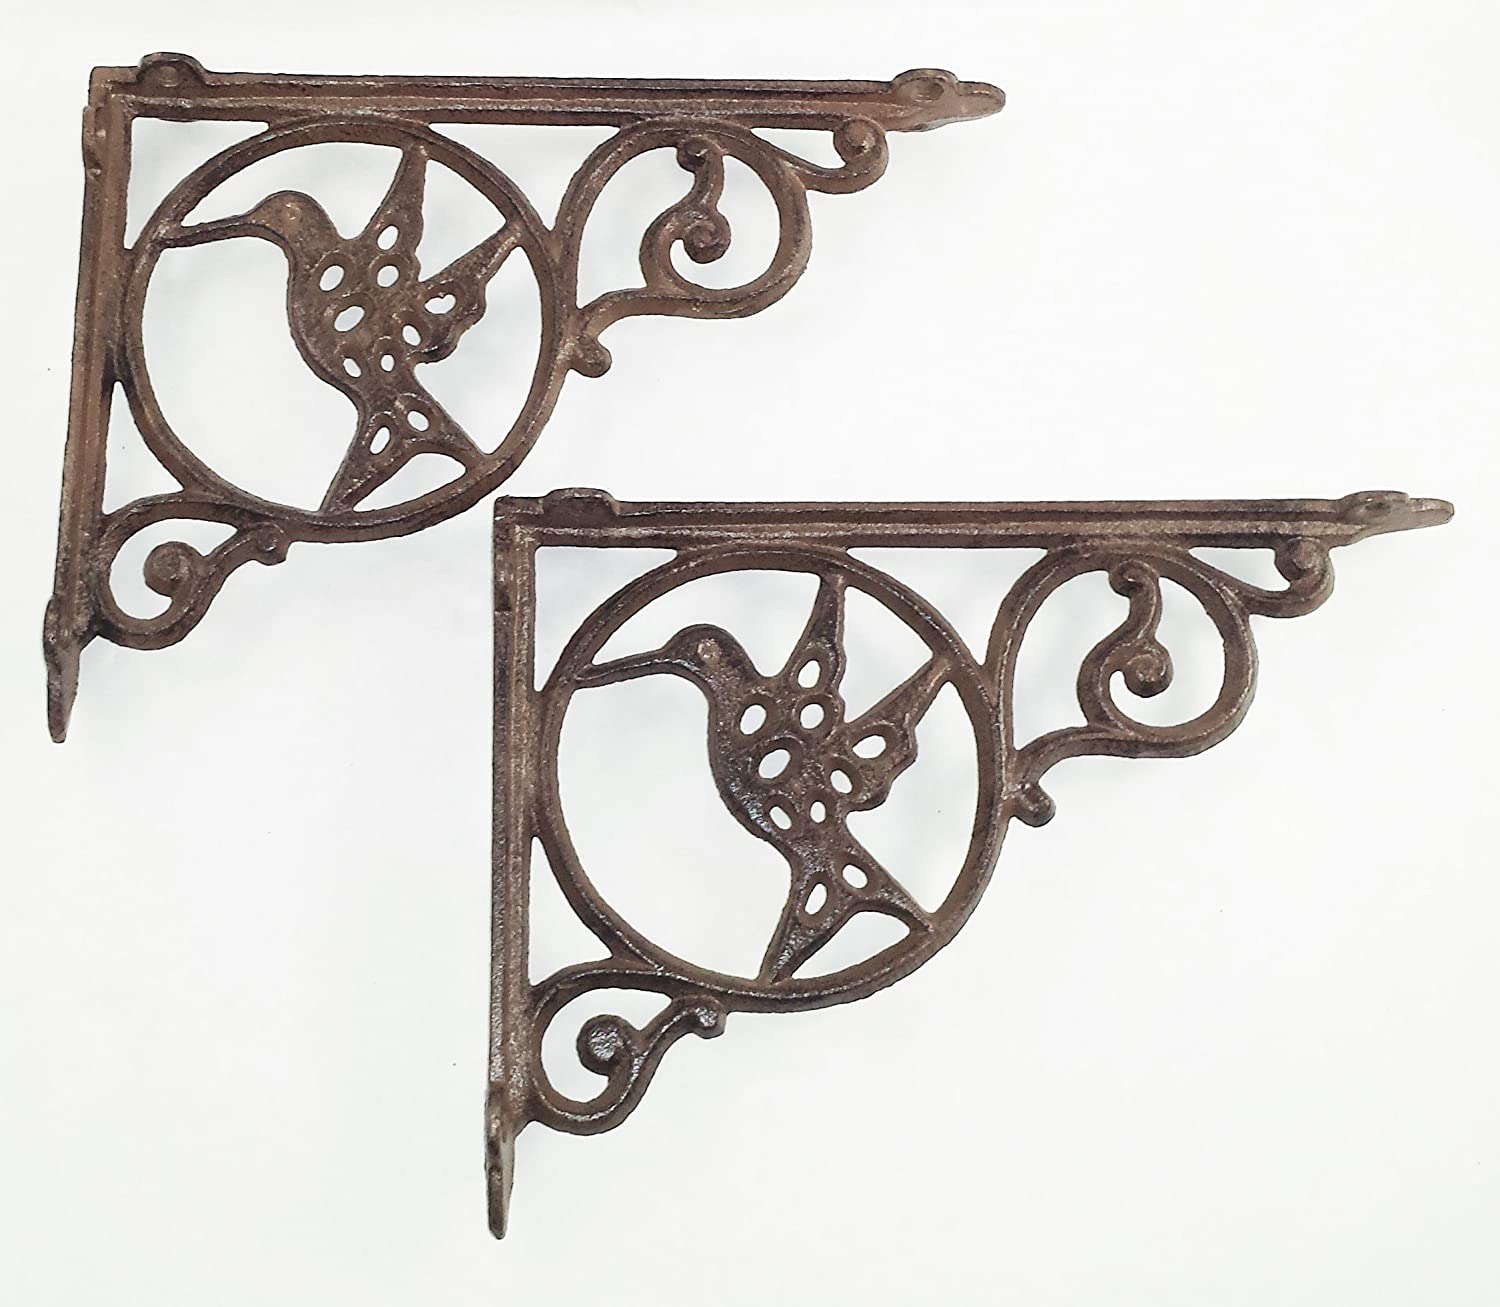 Aunt Chris' Products - [Lot/Set of 2] - Hummingbird Shelf Bracket - Cast Iron - Holes In Bird For Light To Shine Thru - All-Purpose - Rustic Dark Brown Color - Can Be Used Indoor Or Outdoor